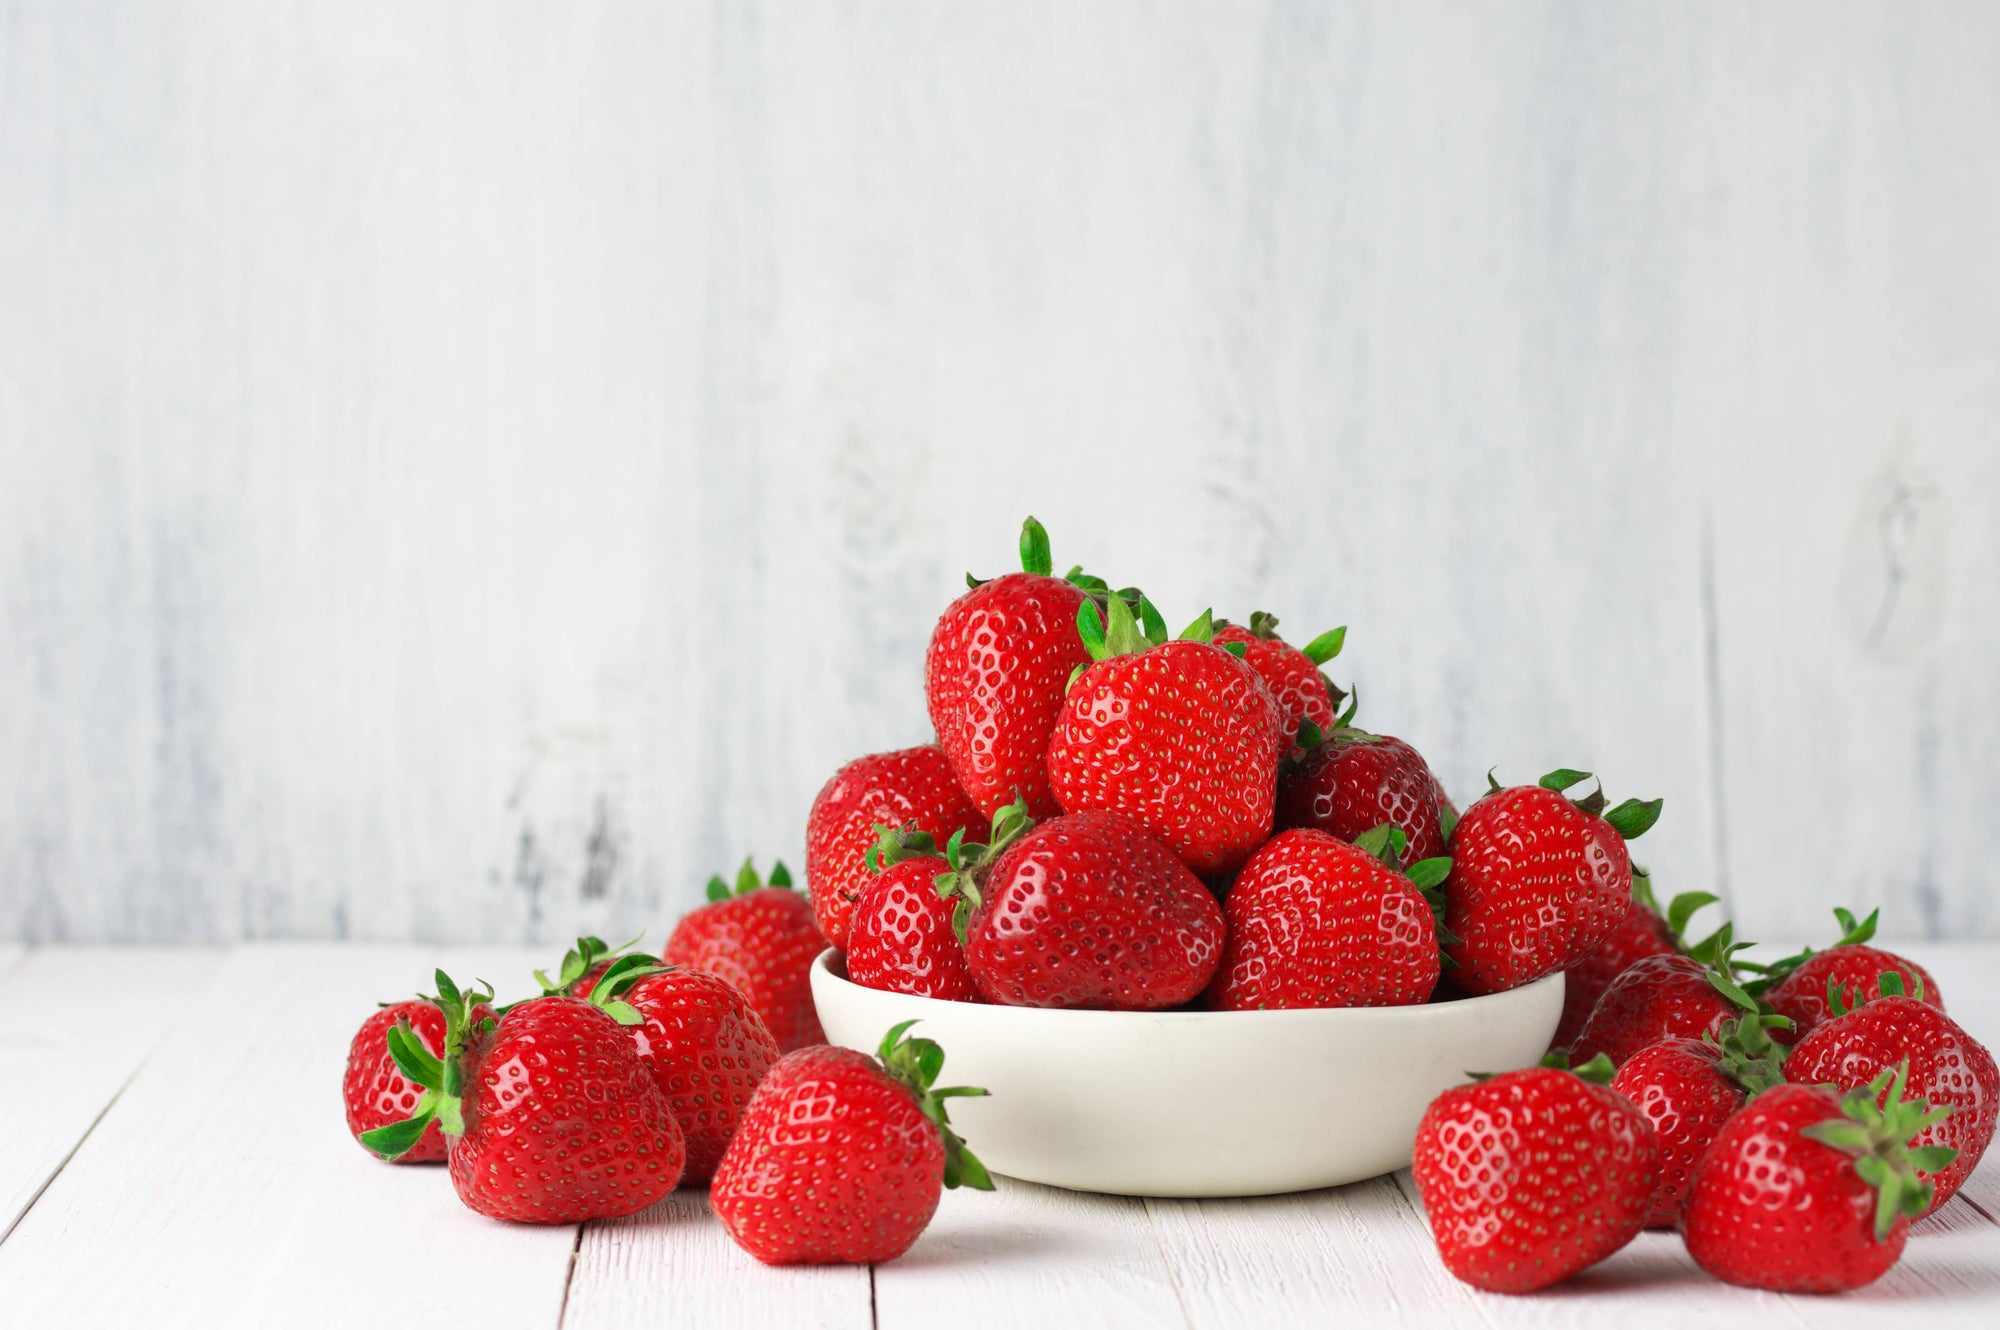 5 Awesome Health Benefits of Strawberries